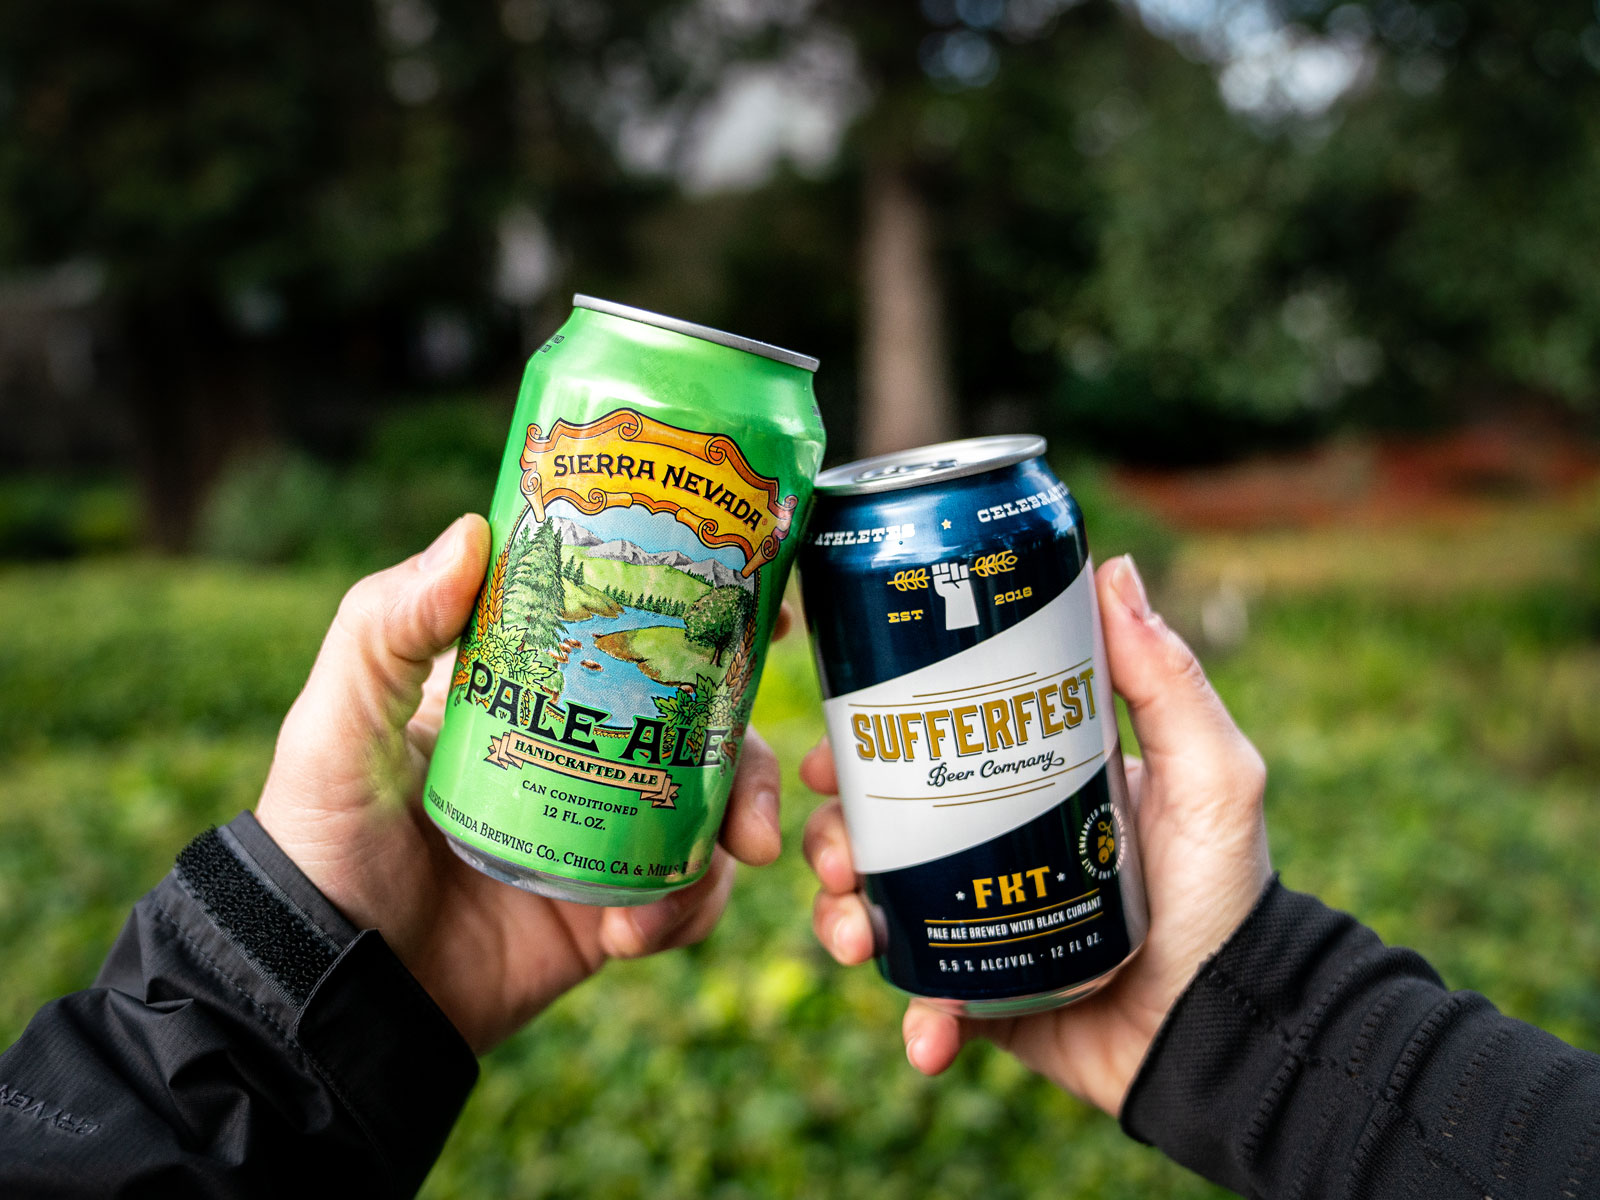 Sierra Nevada Acquires Gluten-Free Beer Maker with Its First Buyout